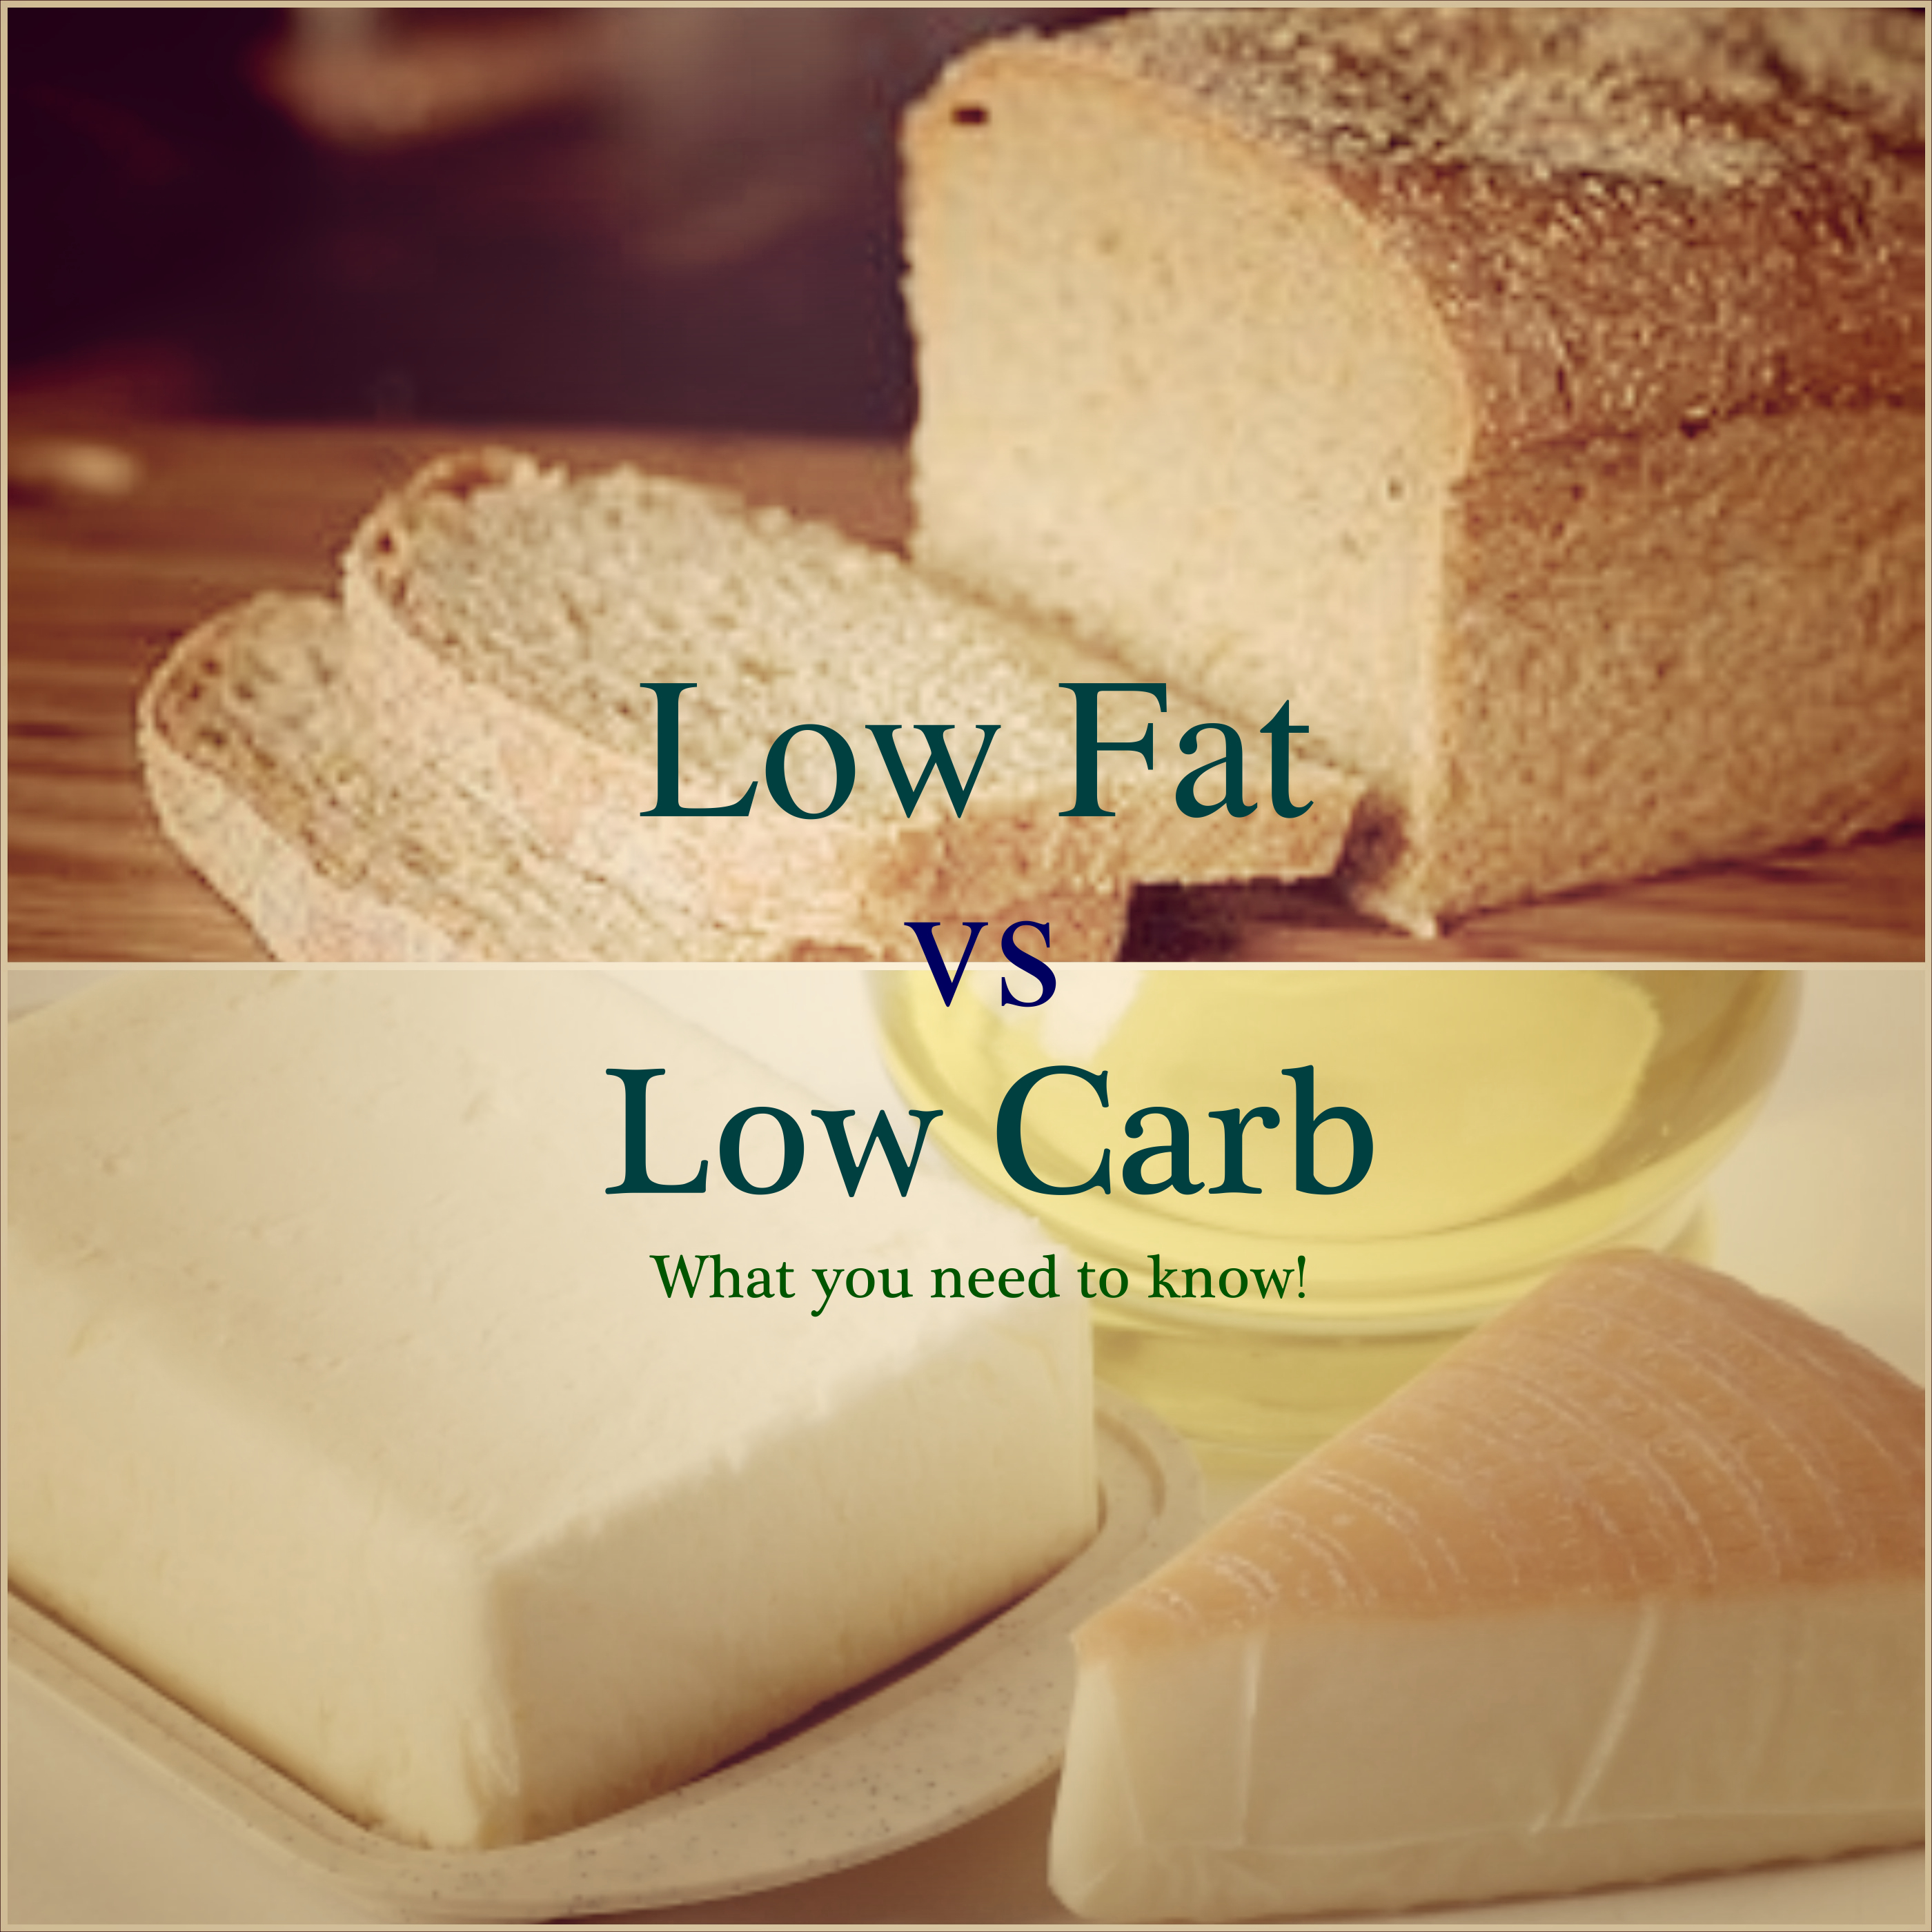 low carbohydrate diet research paper Research on the so-called low carb diet is based on an ineffective as discussed in a recent paper i prepared for the peer-reviewed journal.